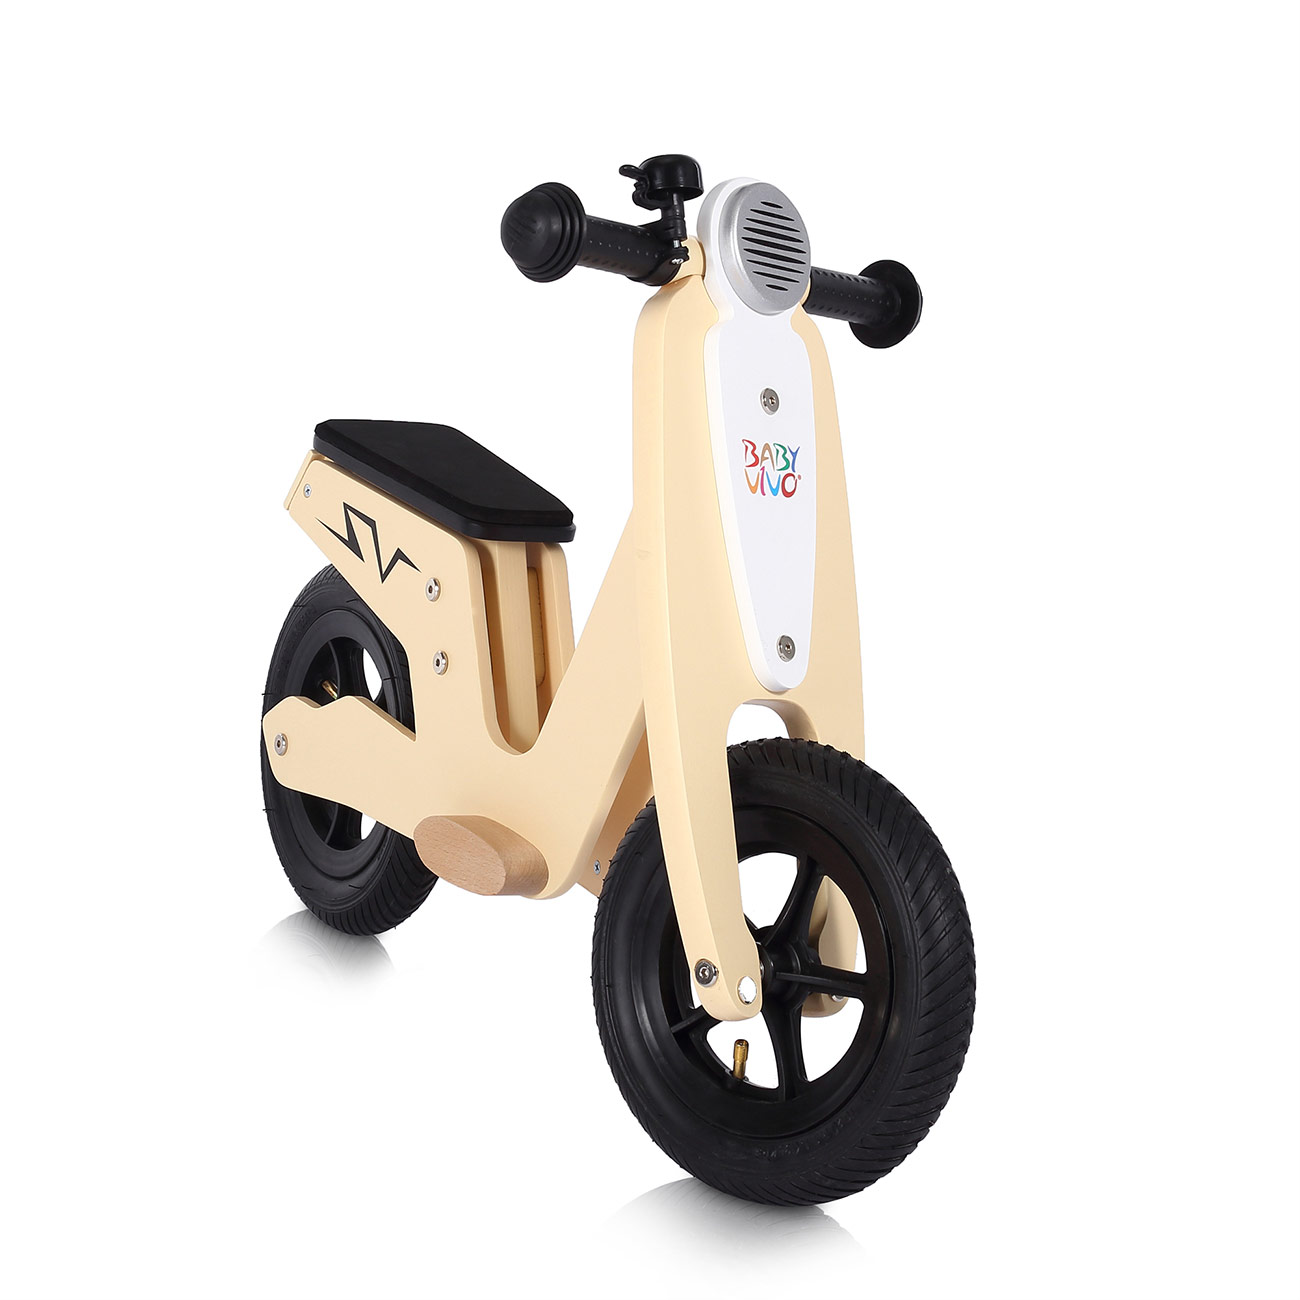 draisienne pour enfant bois balance bike v lo b b trottinette roues baby vivo ebay. Black Bedroom Furniture Sets. Home Design Ideas